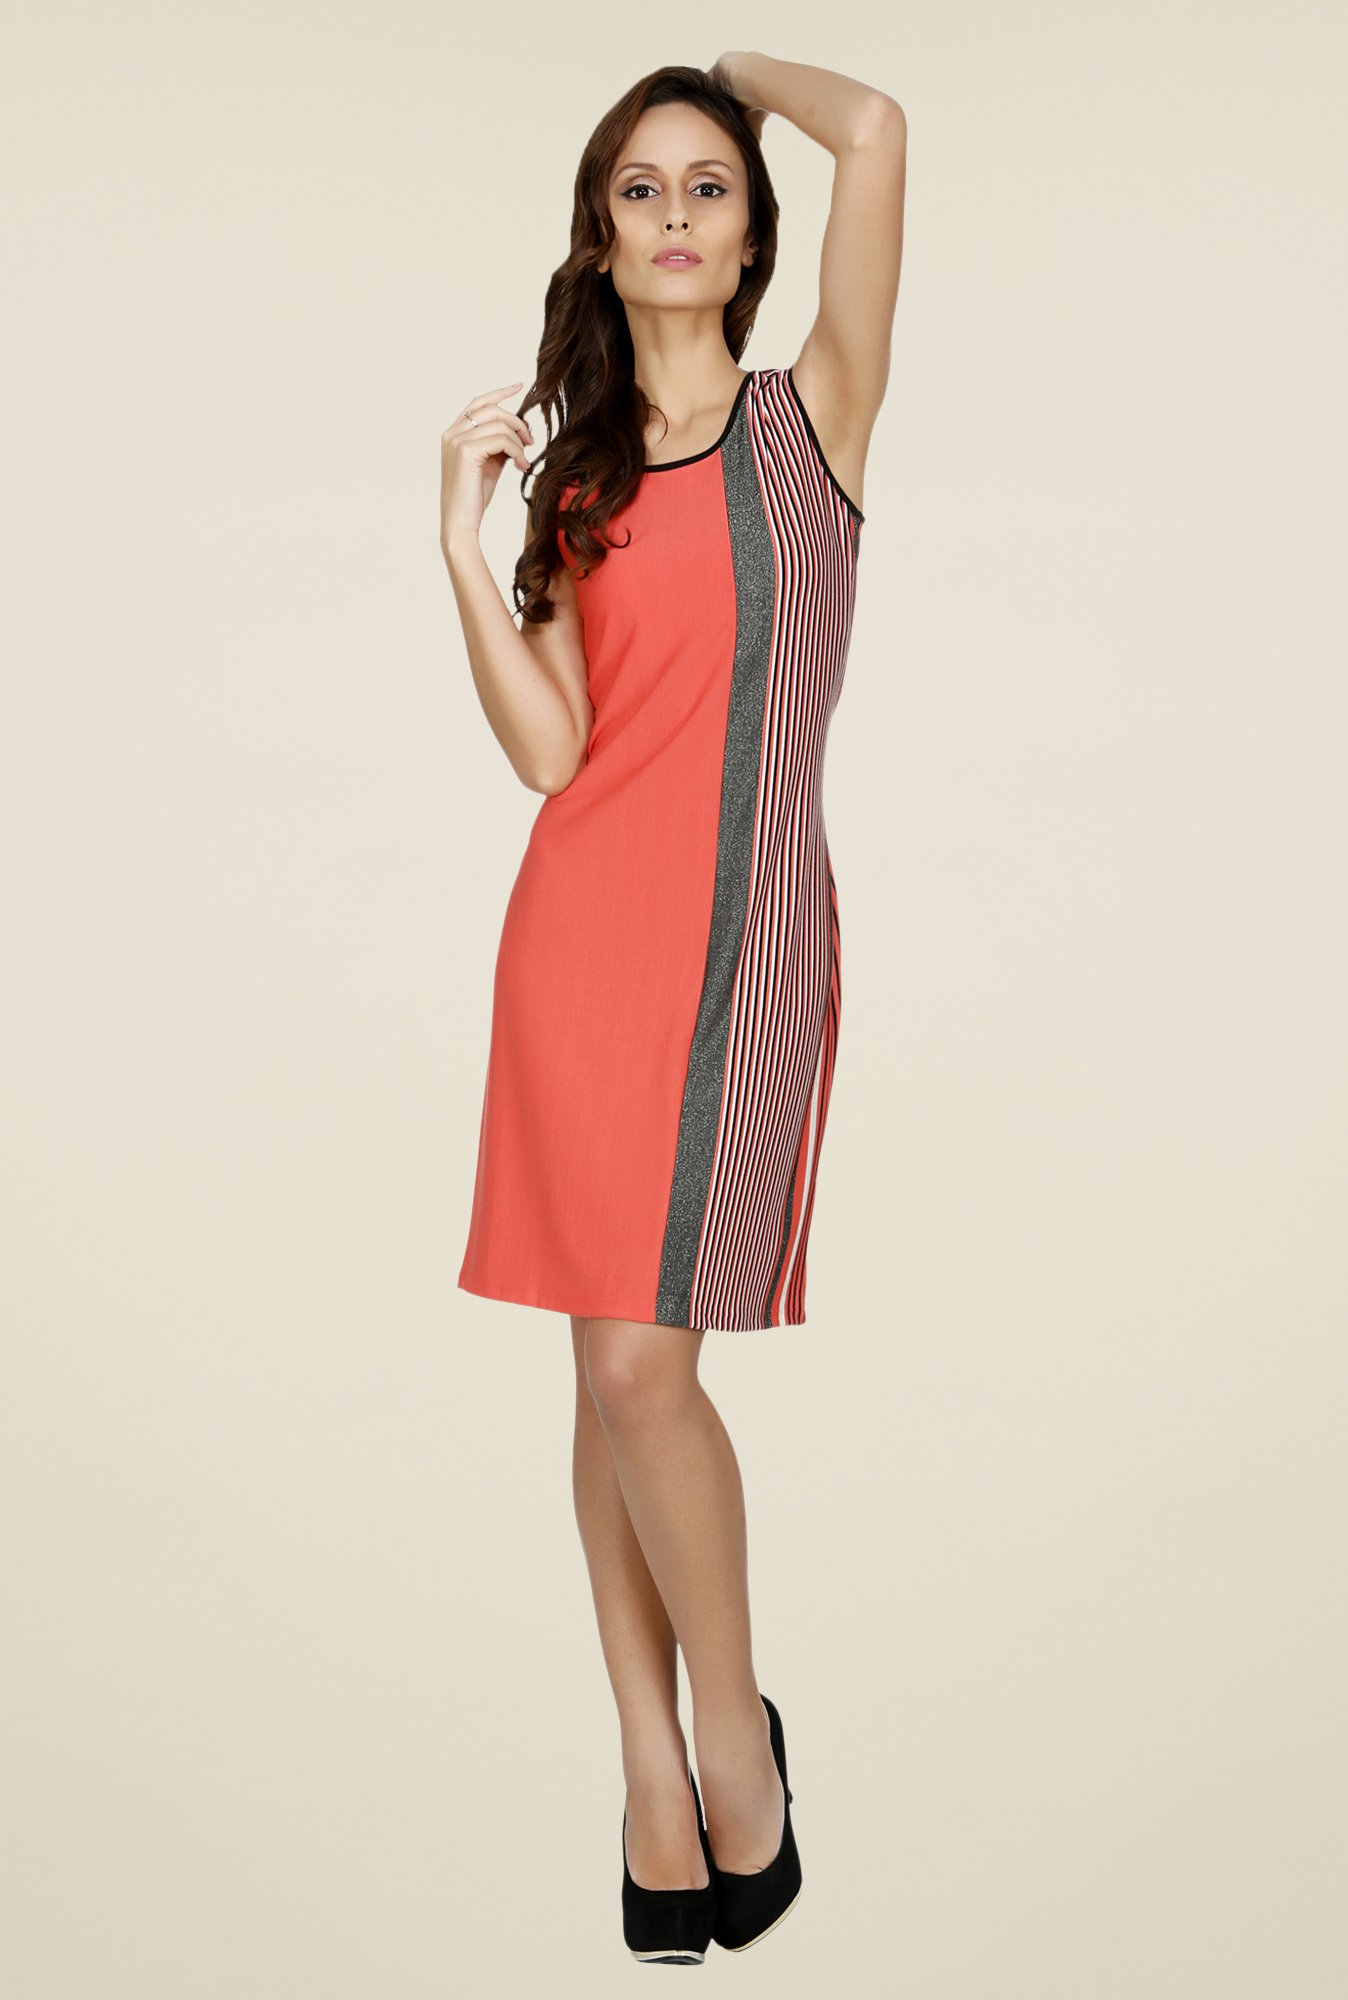 109 F Coral Striped Dress